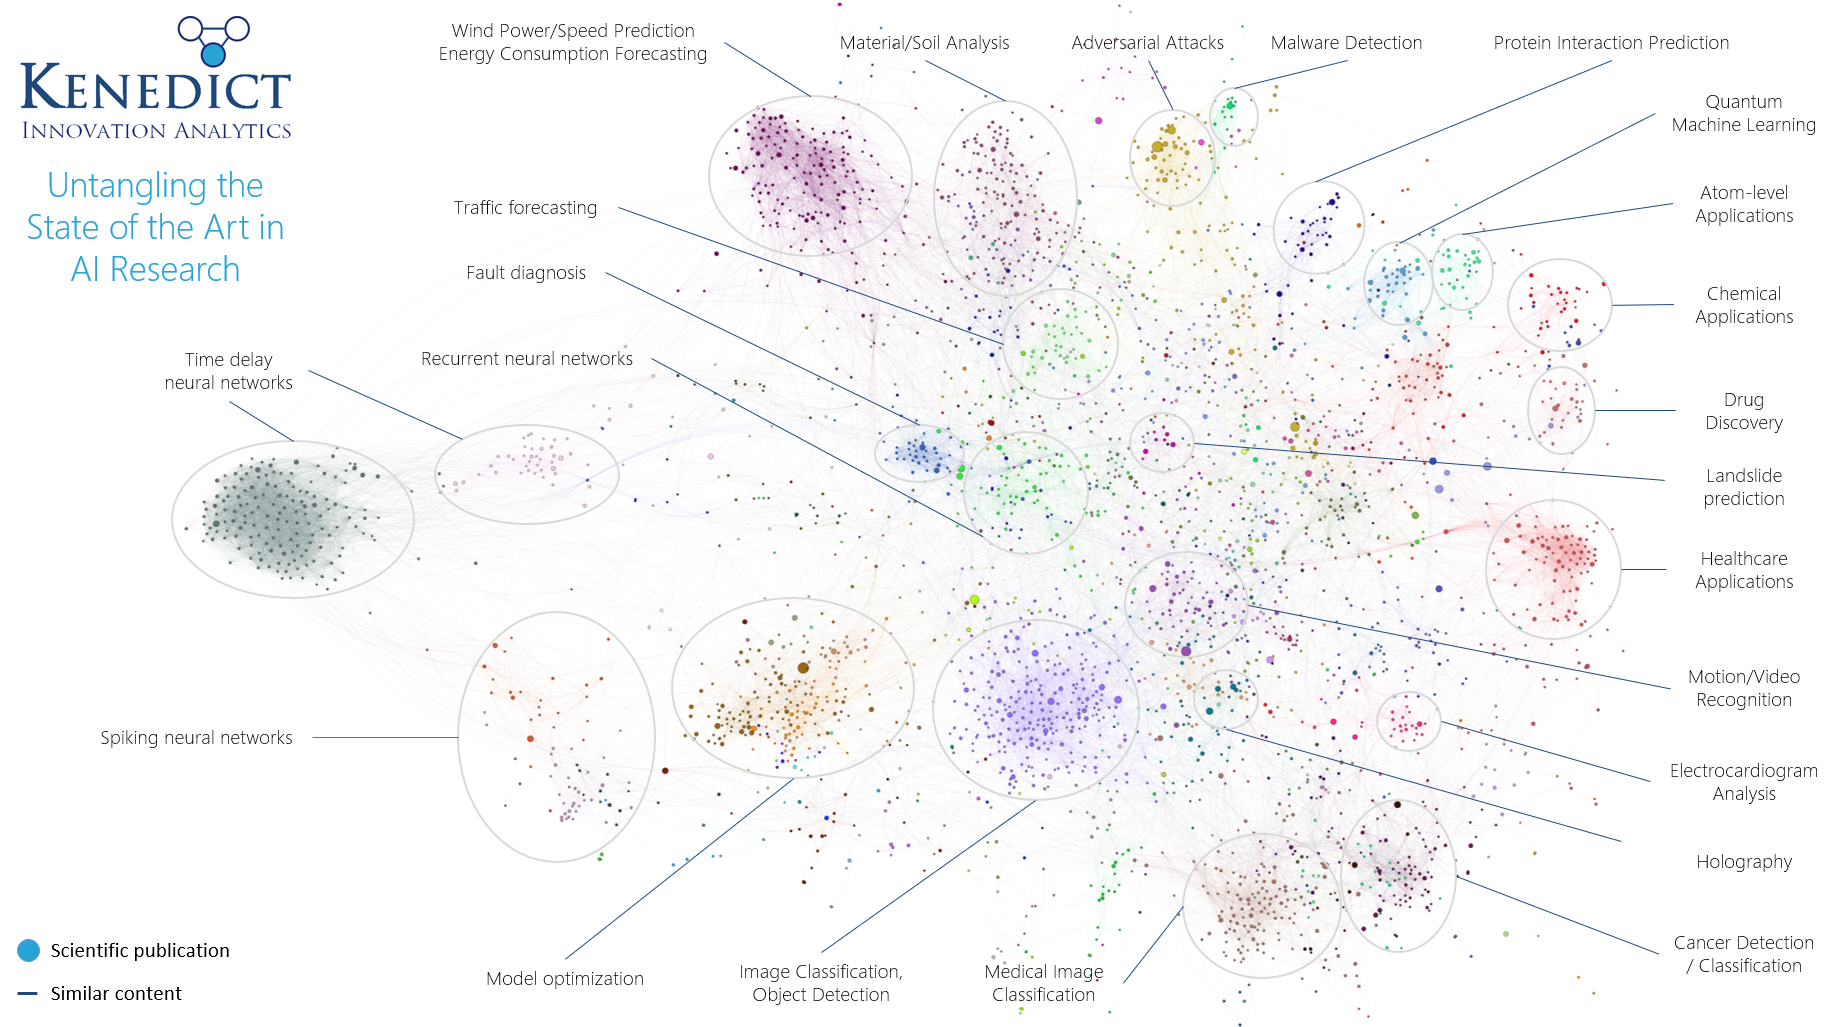 Untangling the State of the Art in Artificial Intelligence by Applying Text Mining and Network Analysis